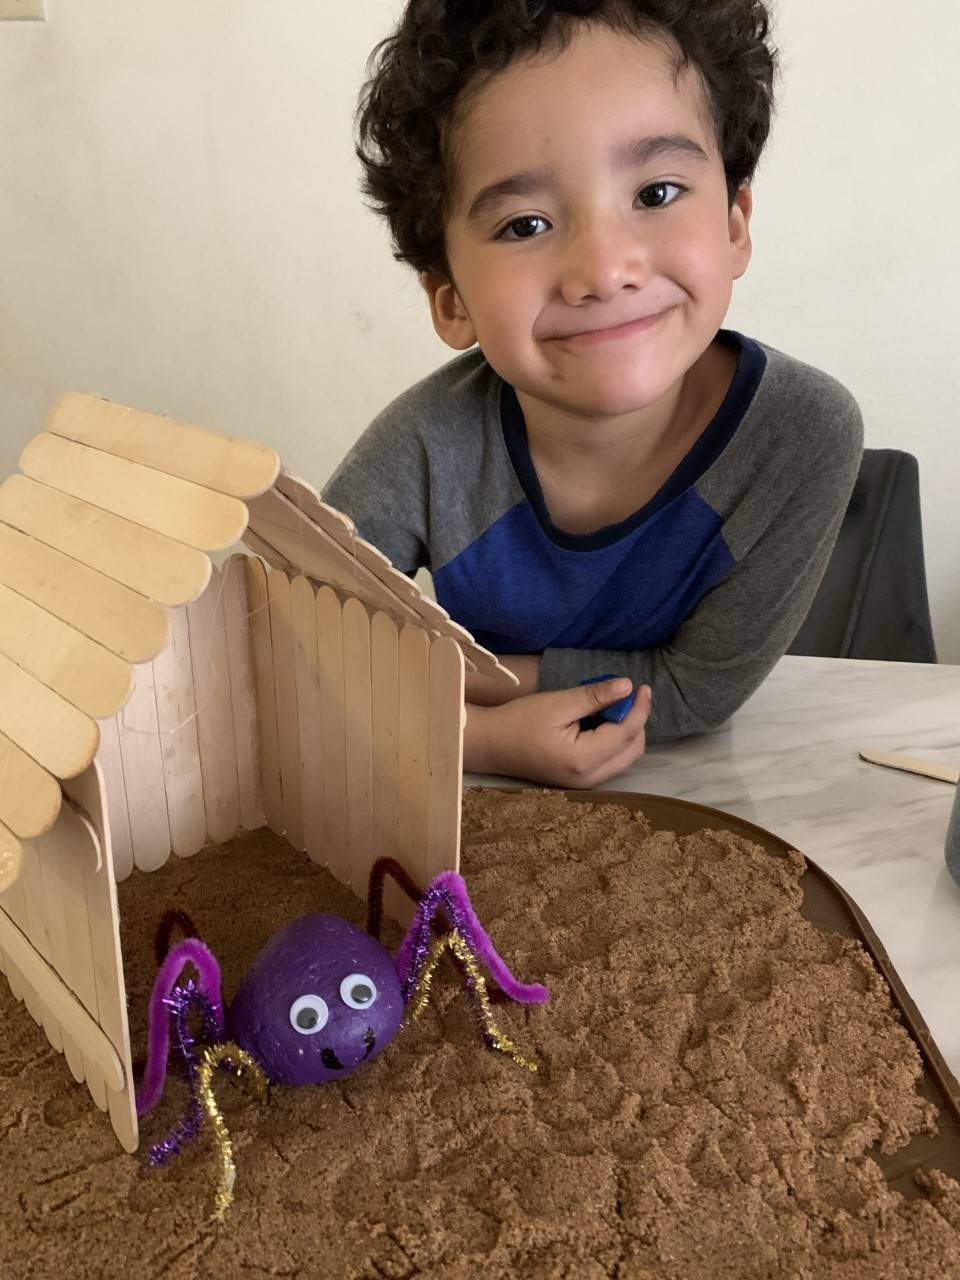 A student poses with his pet rock inside of a house.